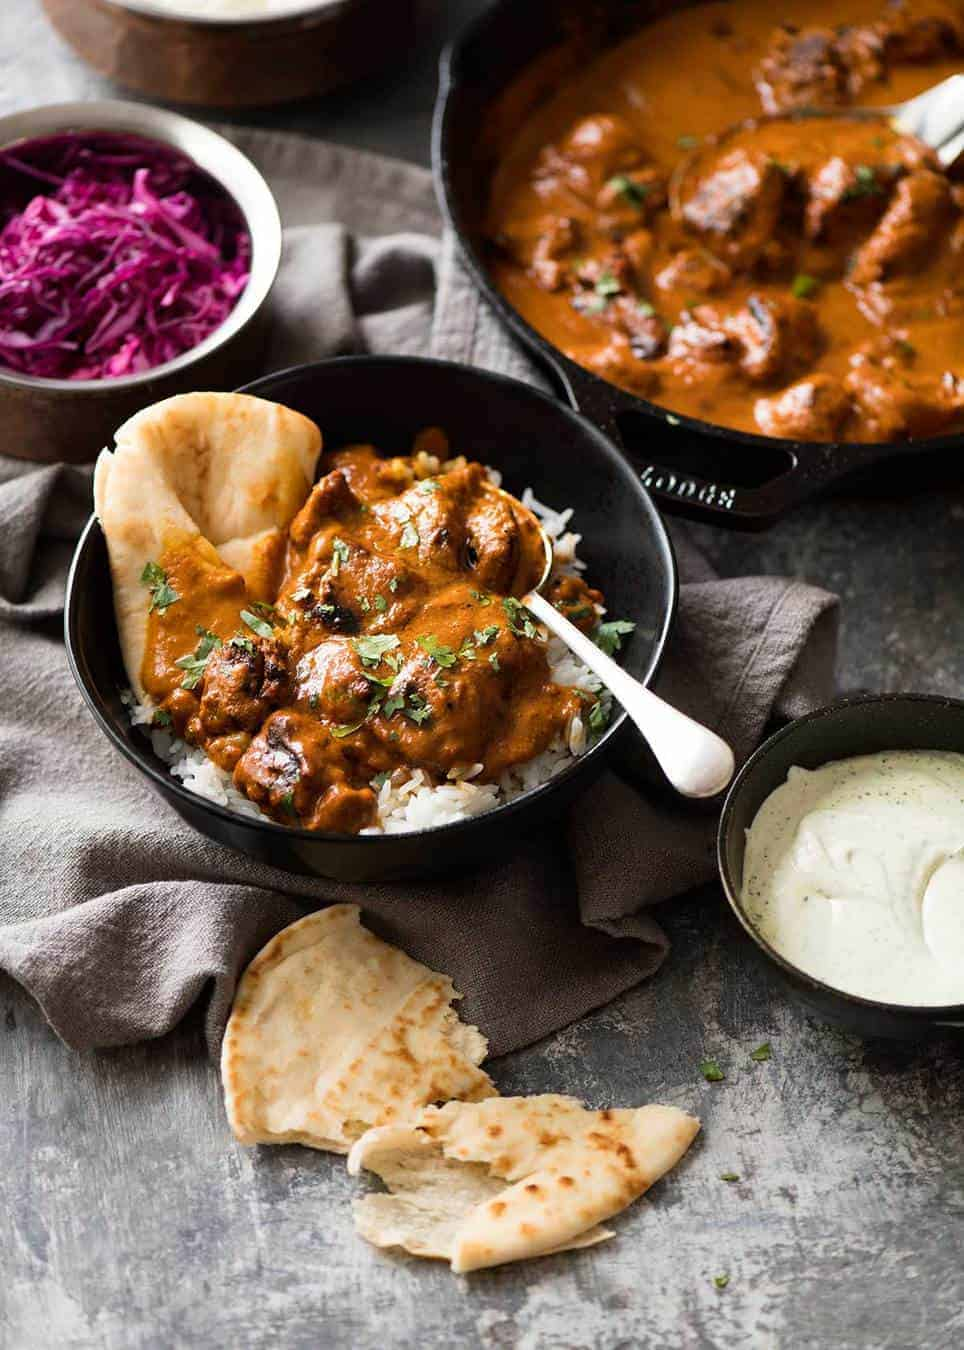 Photo of chicken tikka masala on basmati rice in a dark rustic bowl with a piece of naan wedged in on the side. Pickled red cabbage and skillet of Chicken Tikka Masala in the background.